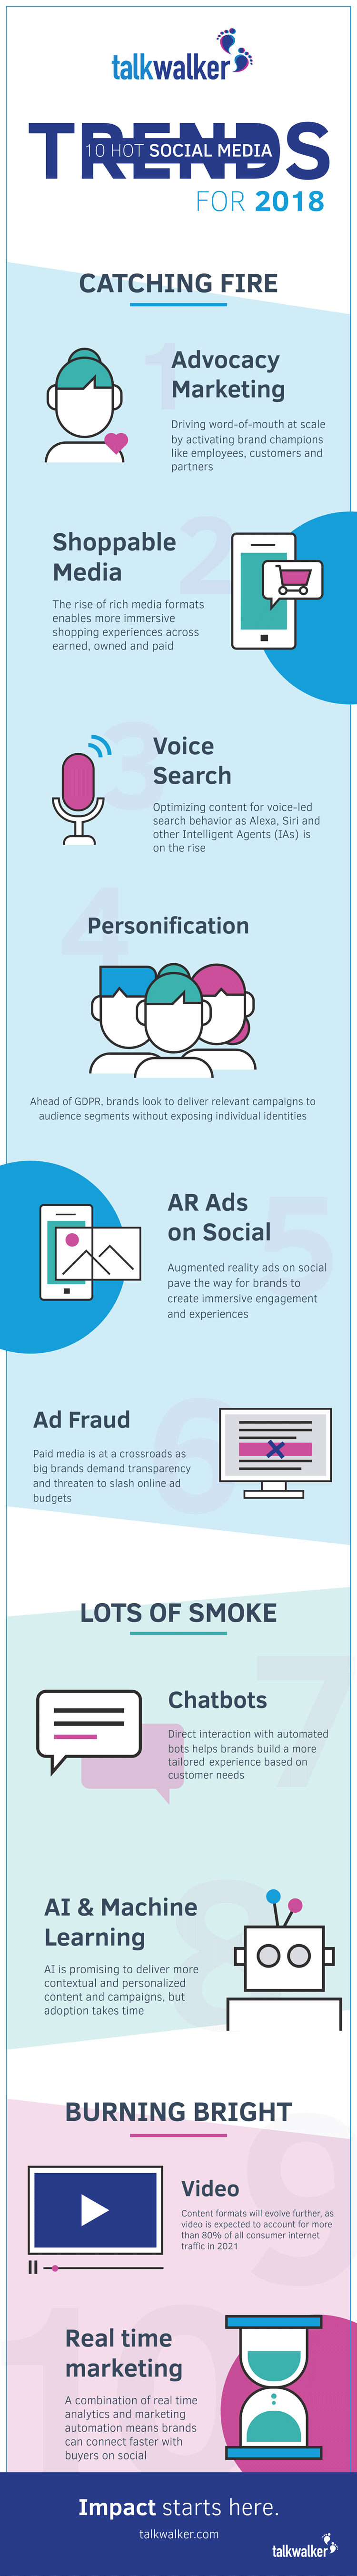 Infografik: Social Media Marketing Trends 2018